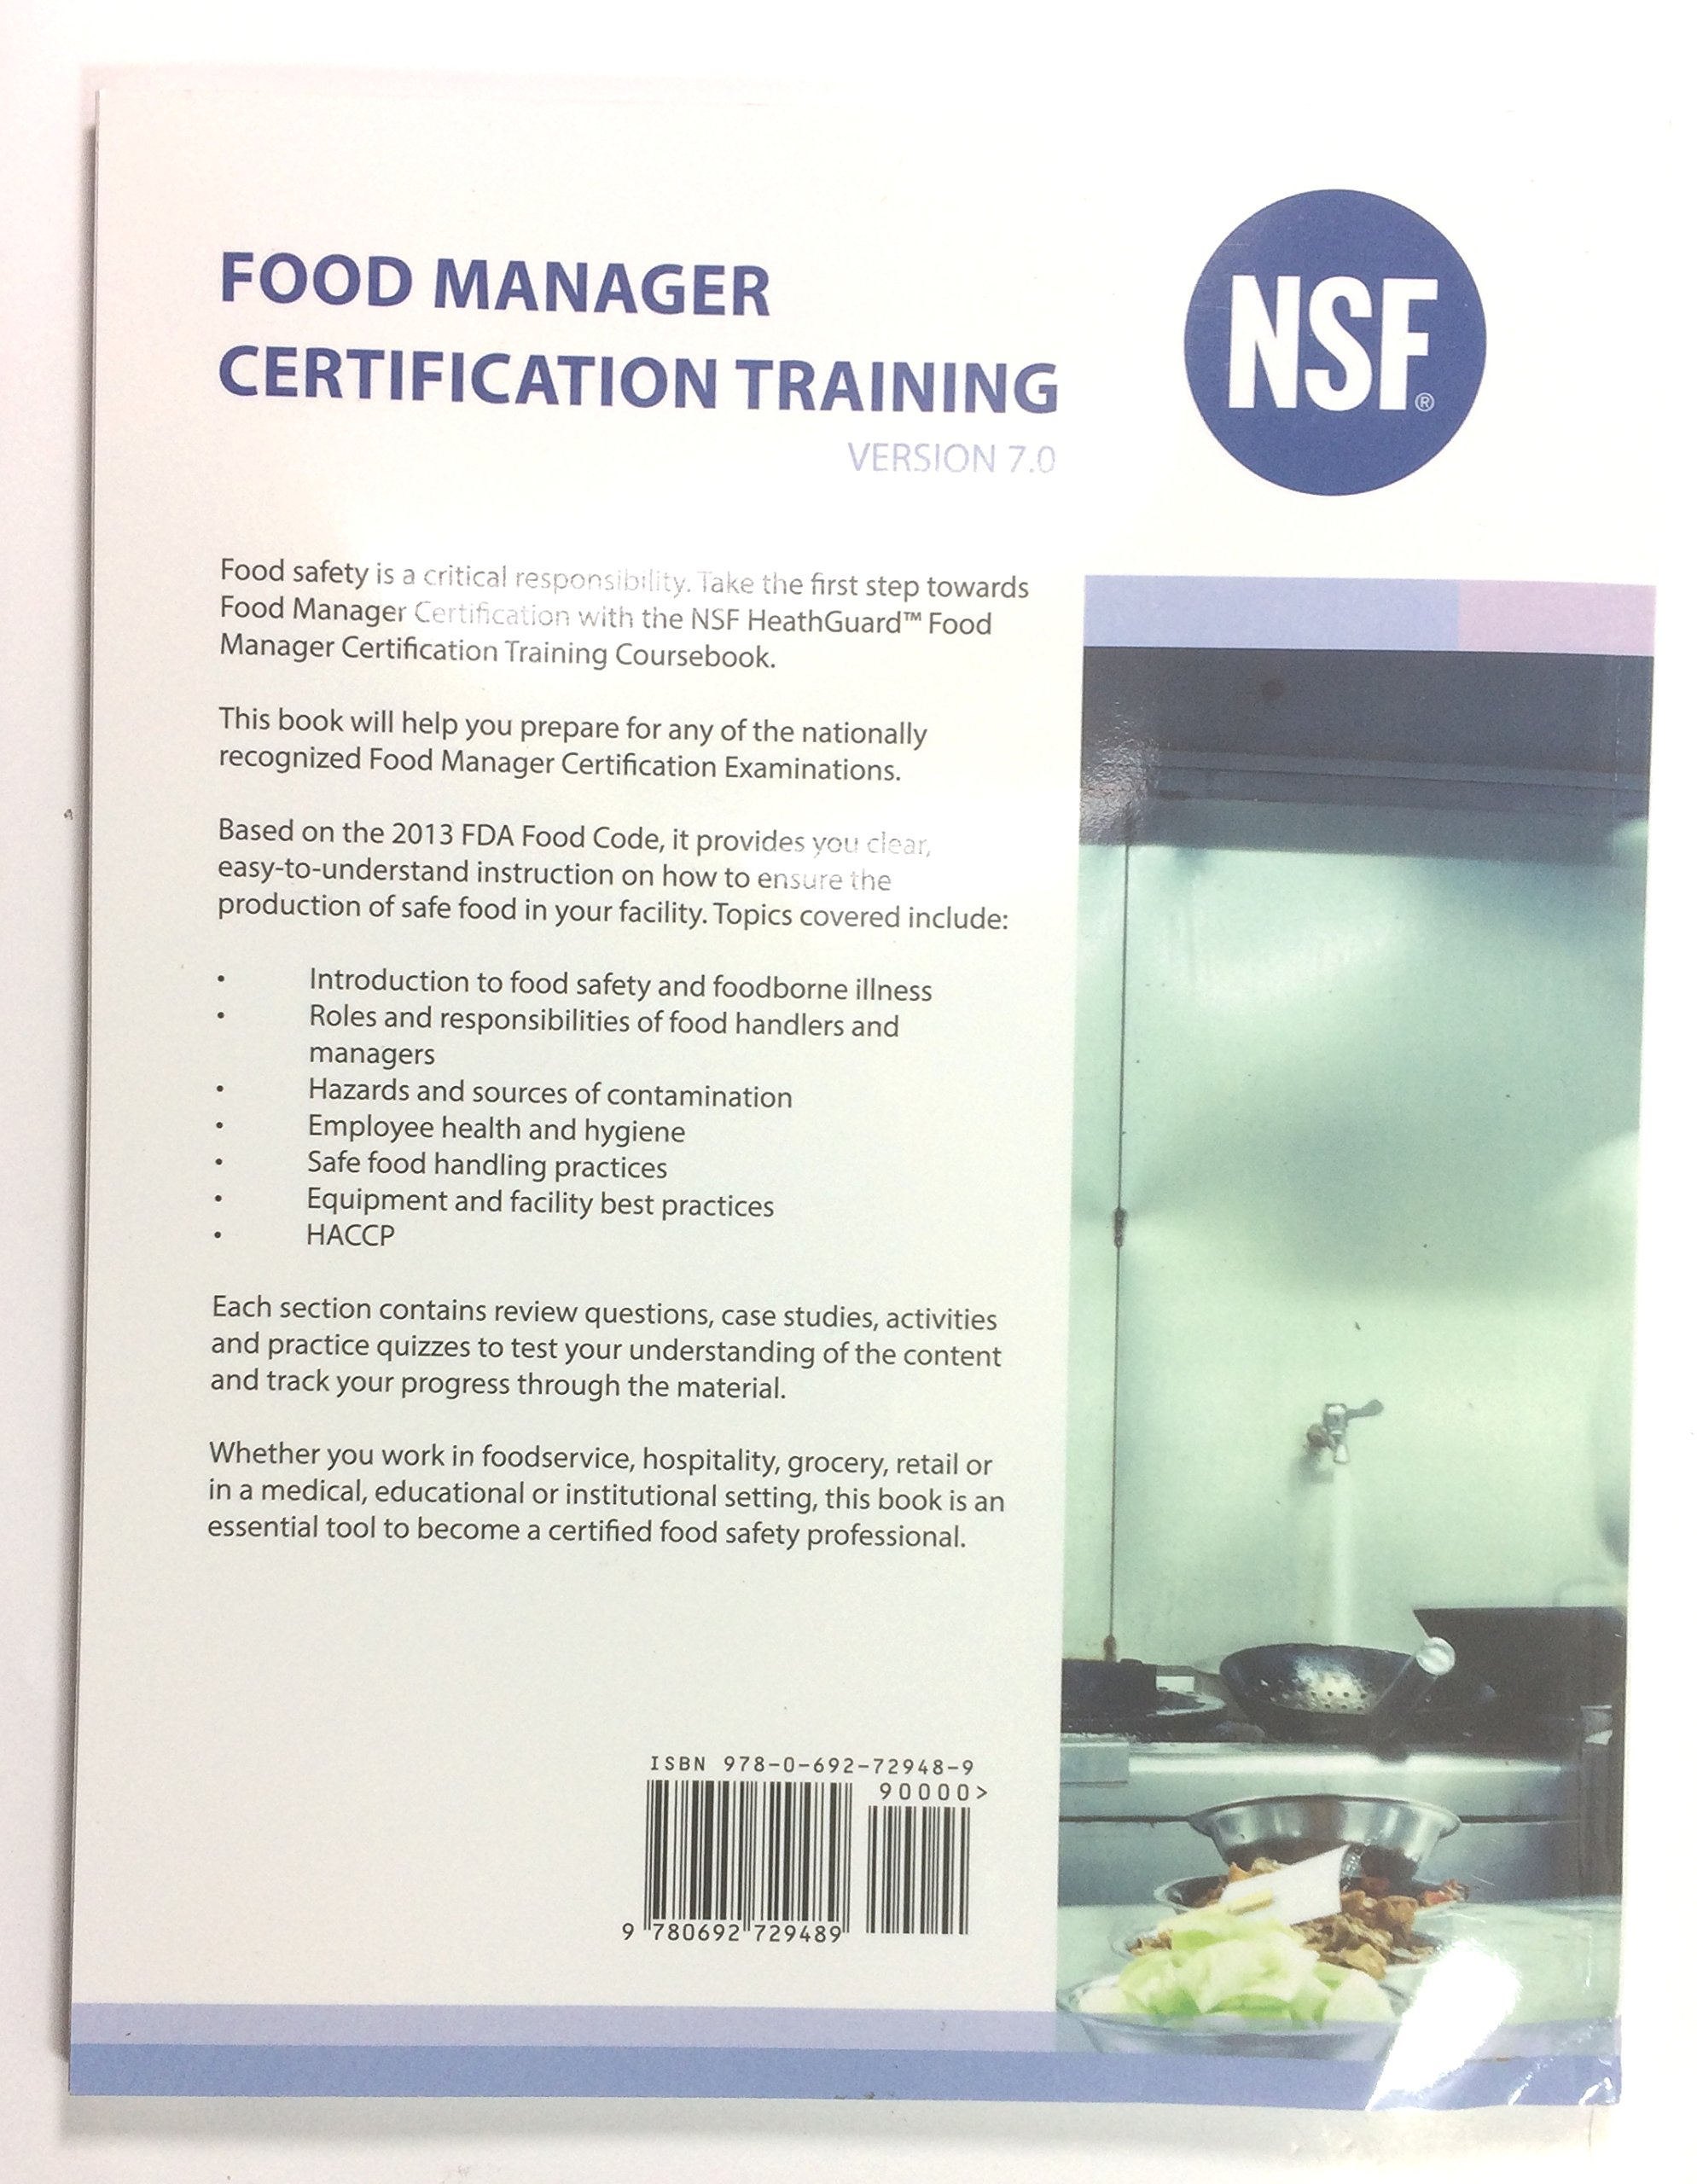 Nsf healthguard food manager certification training version 70 nsf healthguard food manager certification training version 70 nsf international 0000081819959 amazon books 1betcityfo Images